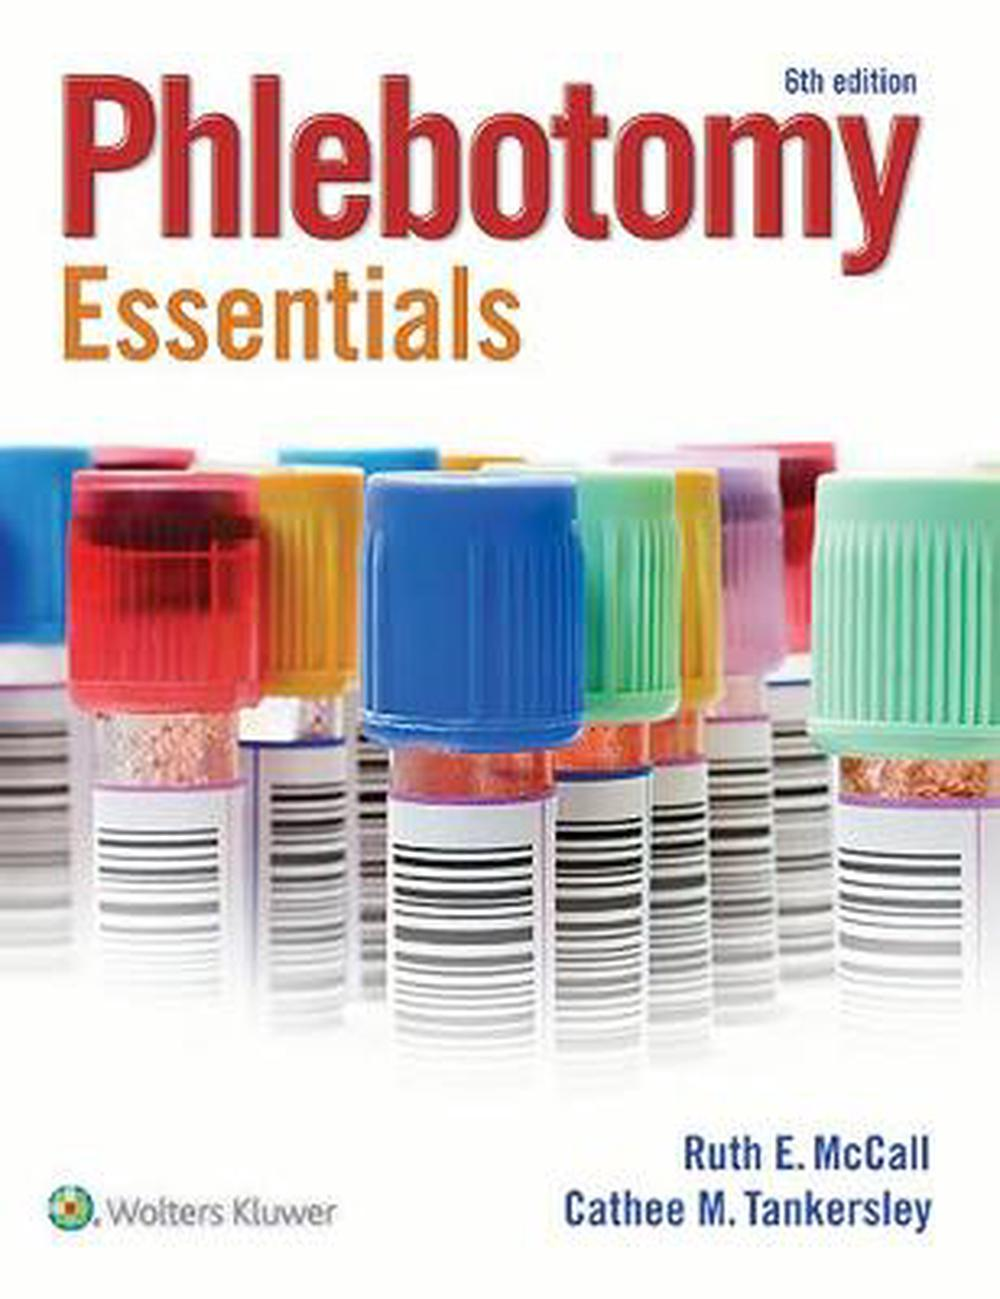 Phlebotomy Essentials, 6th Edition